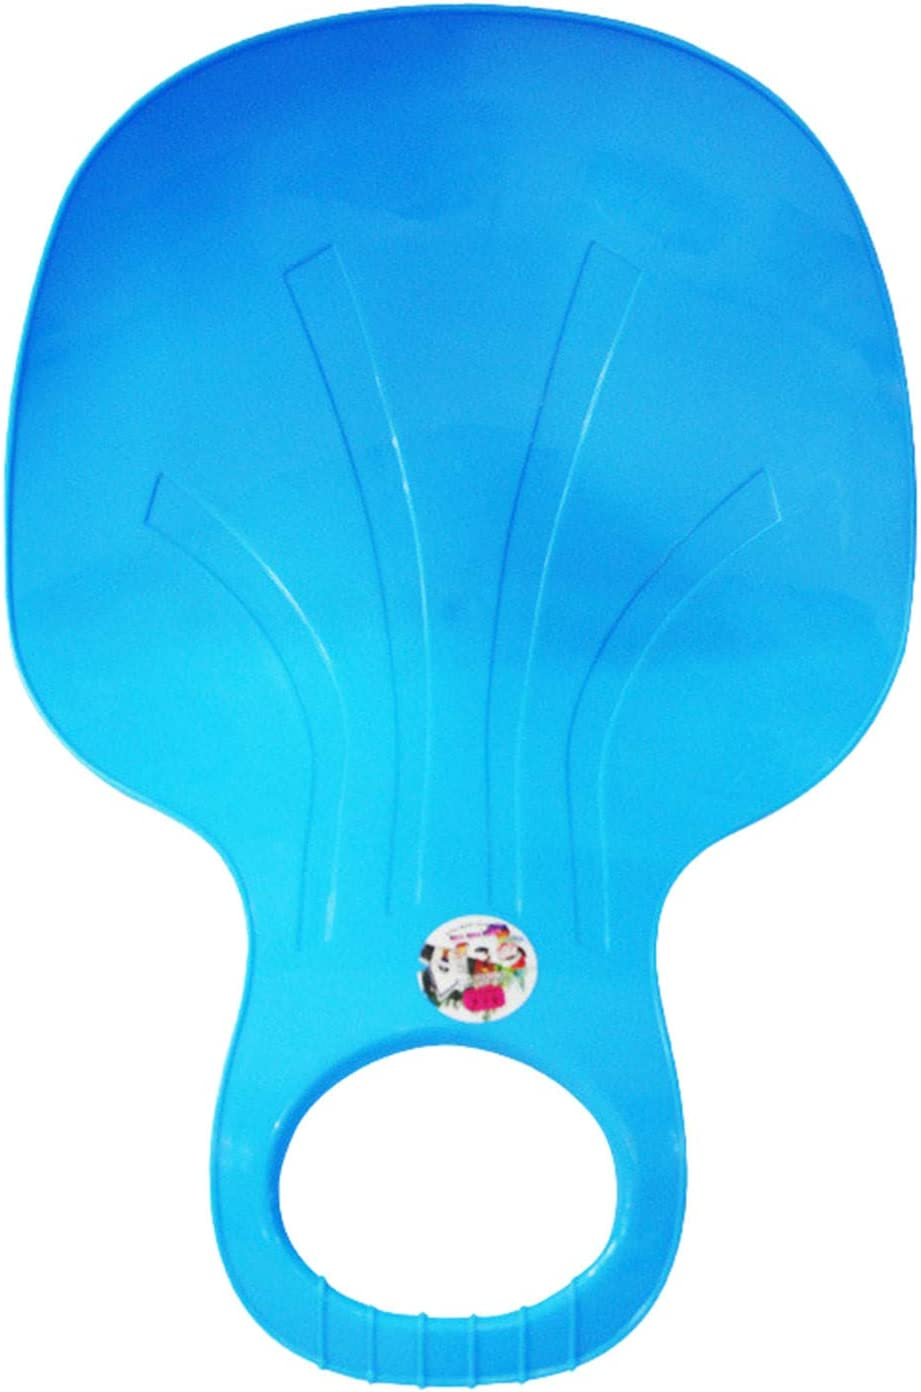 Great for Winter Snow Sleds Snow Sled Pad Durable Plastic -Lightweight Flexible Flyer Downhill Sleds for Kids and Adult